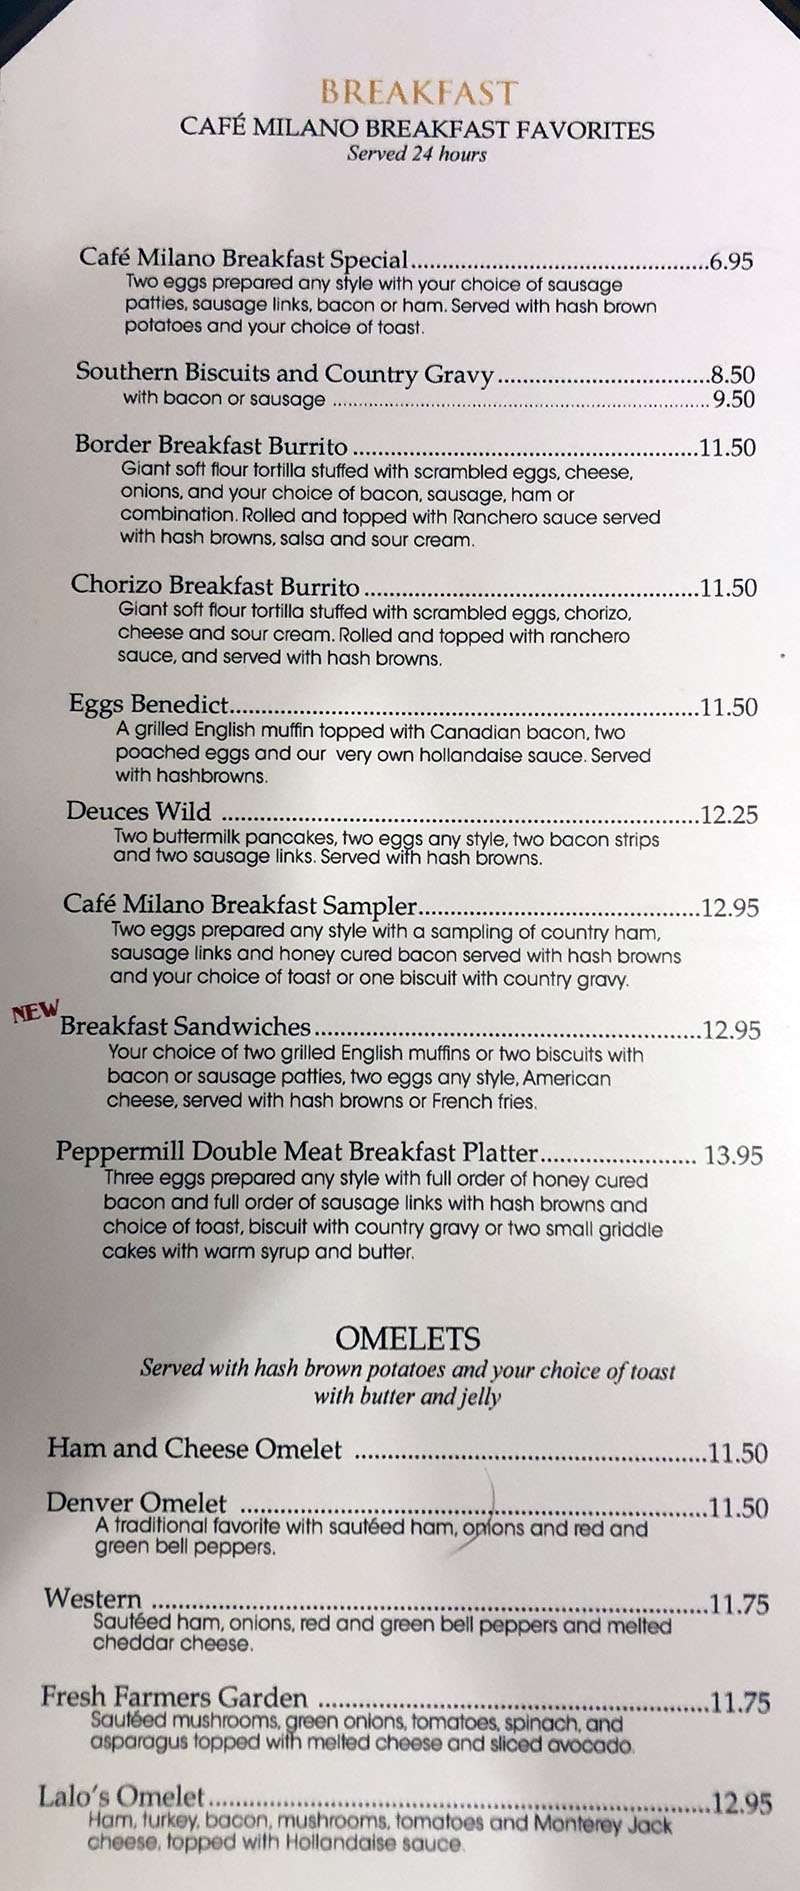 Cafe Milano Peppermill menu - breakfast